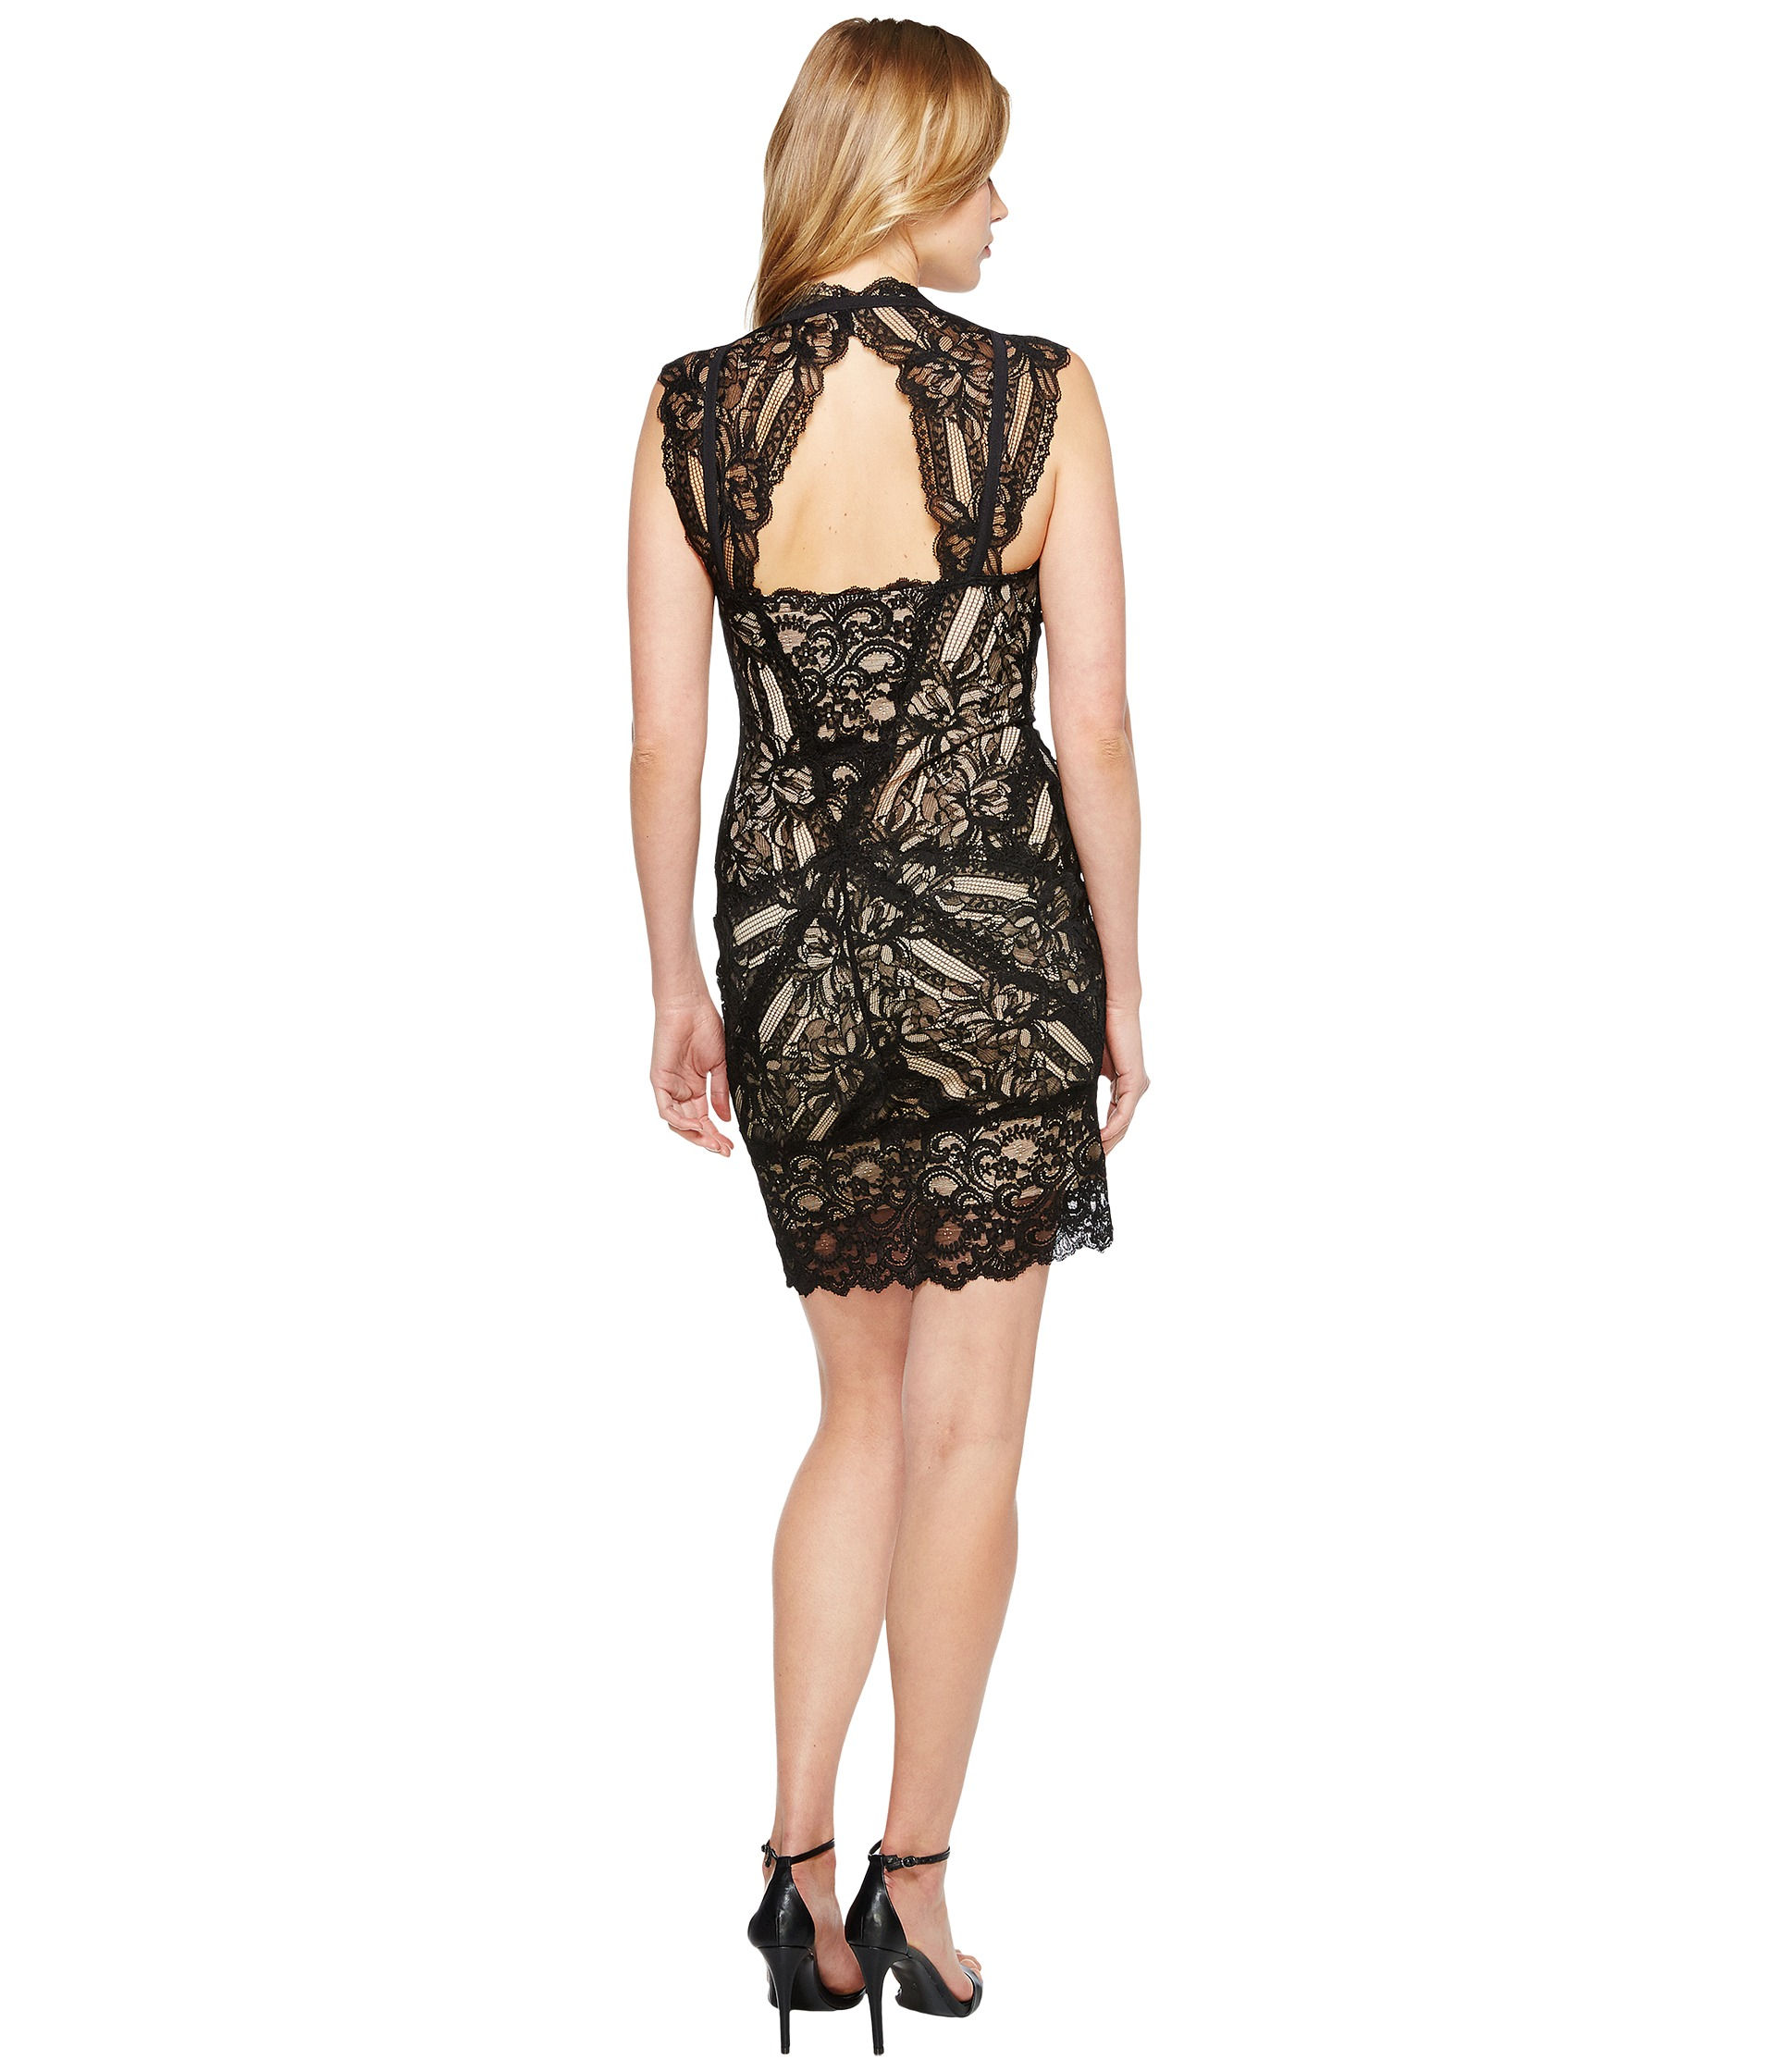 Nicole Miller Stretch Lace Dress With Open Back Detail